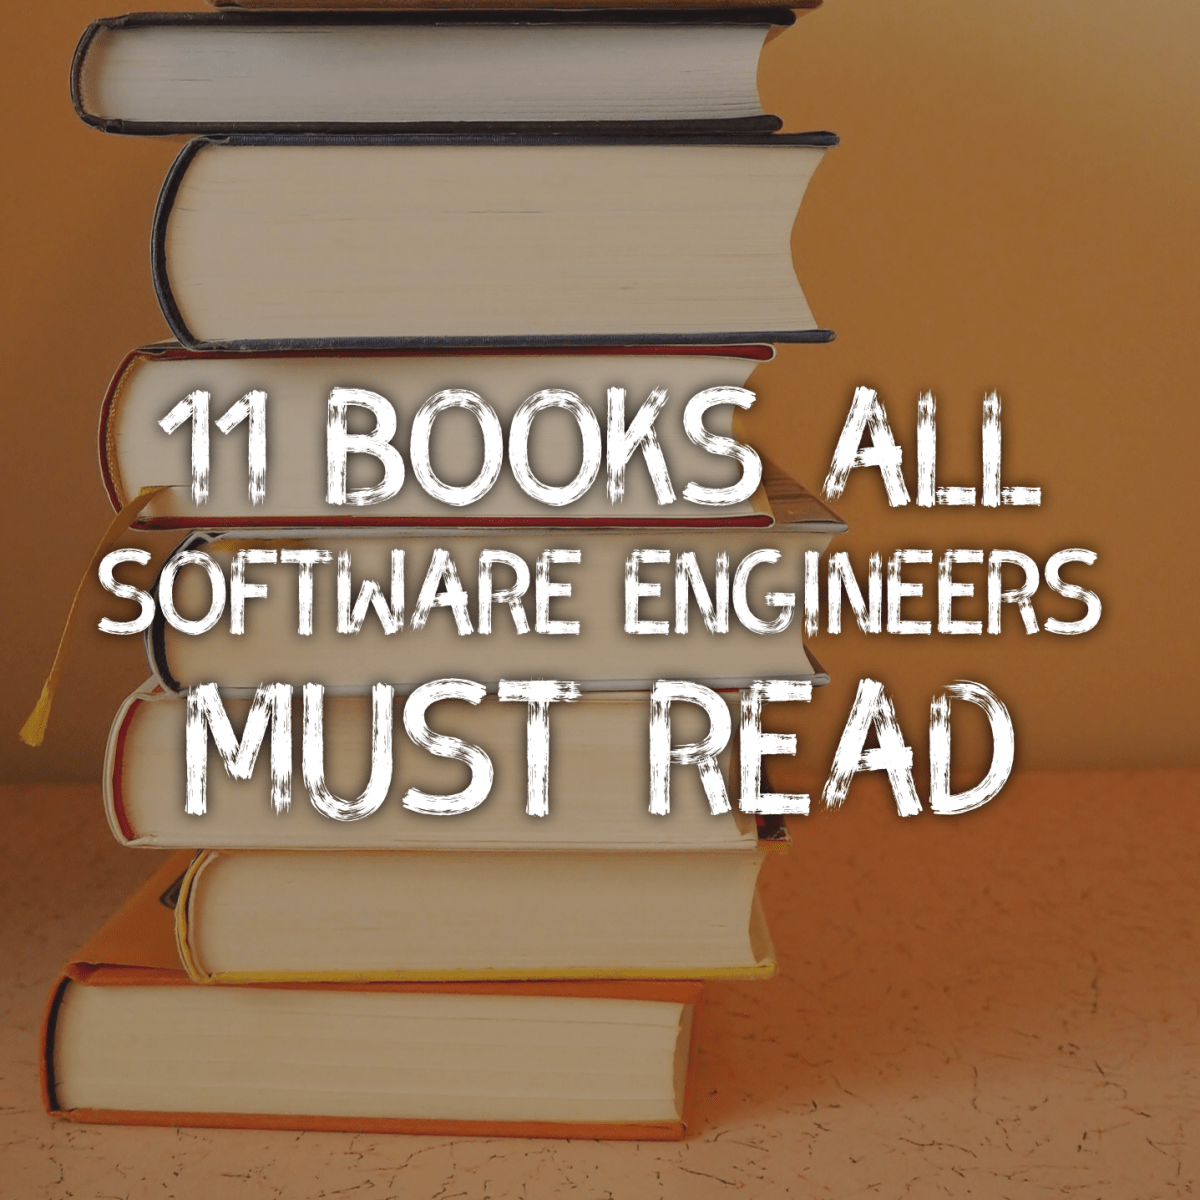 11 Books All Software Engineers Must Read